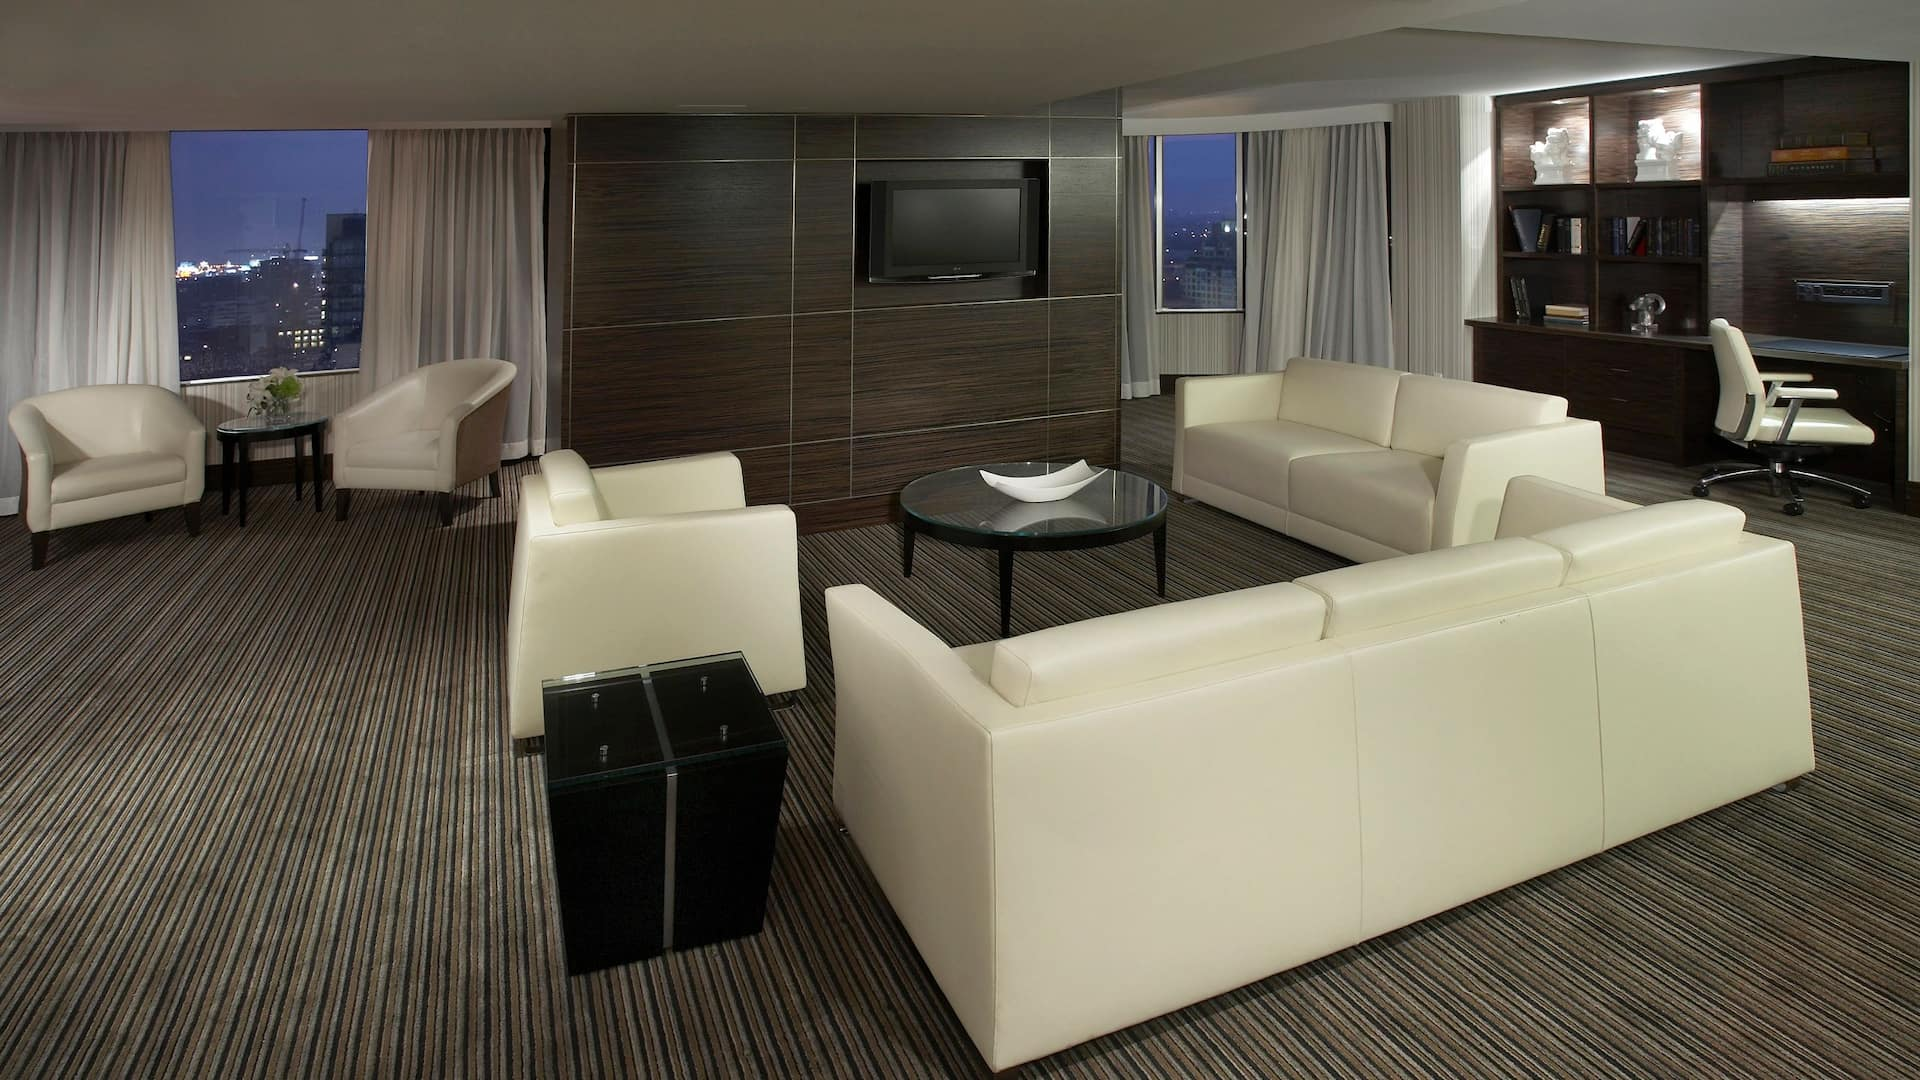 Hyatt Regency Toronto Suite